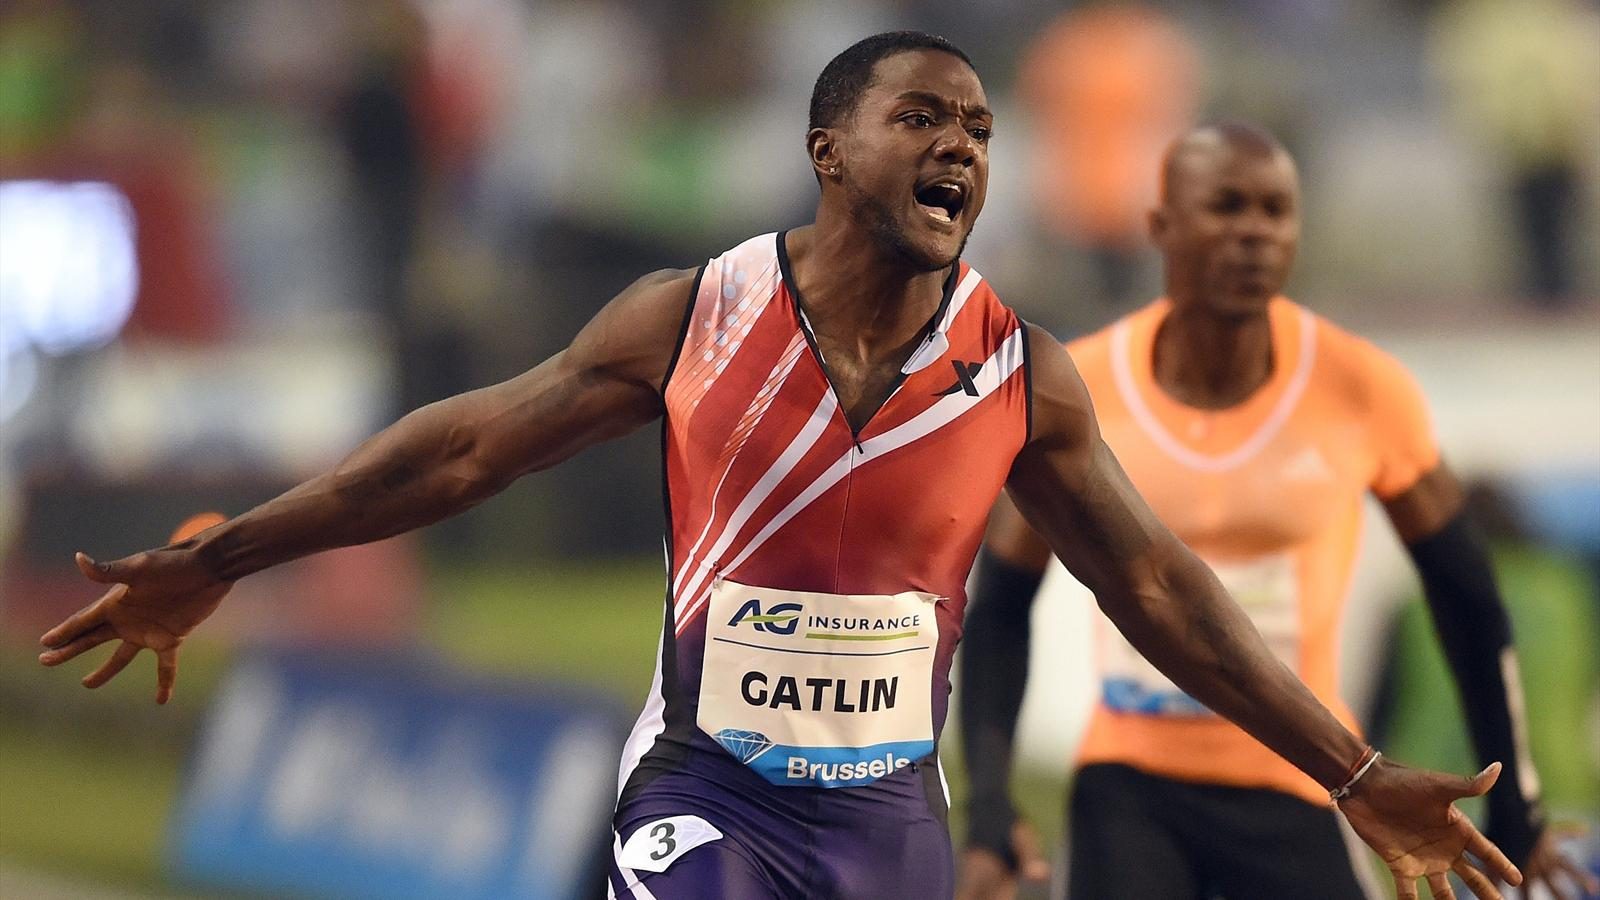 America's serial drugs cheat Justin Gatlin has failed to make the shortlist for the IAAF World Athlete of the Year Award ©Getty Images